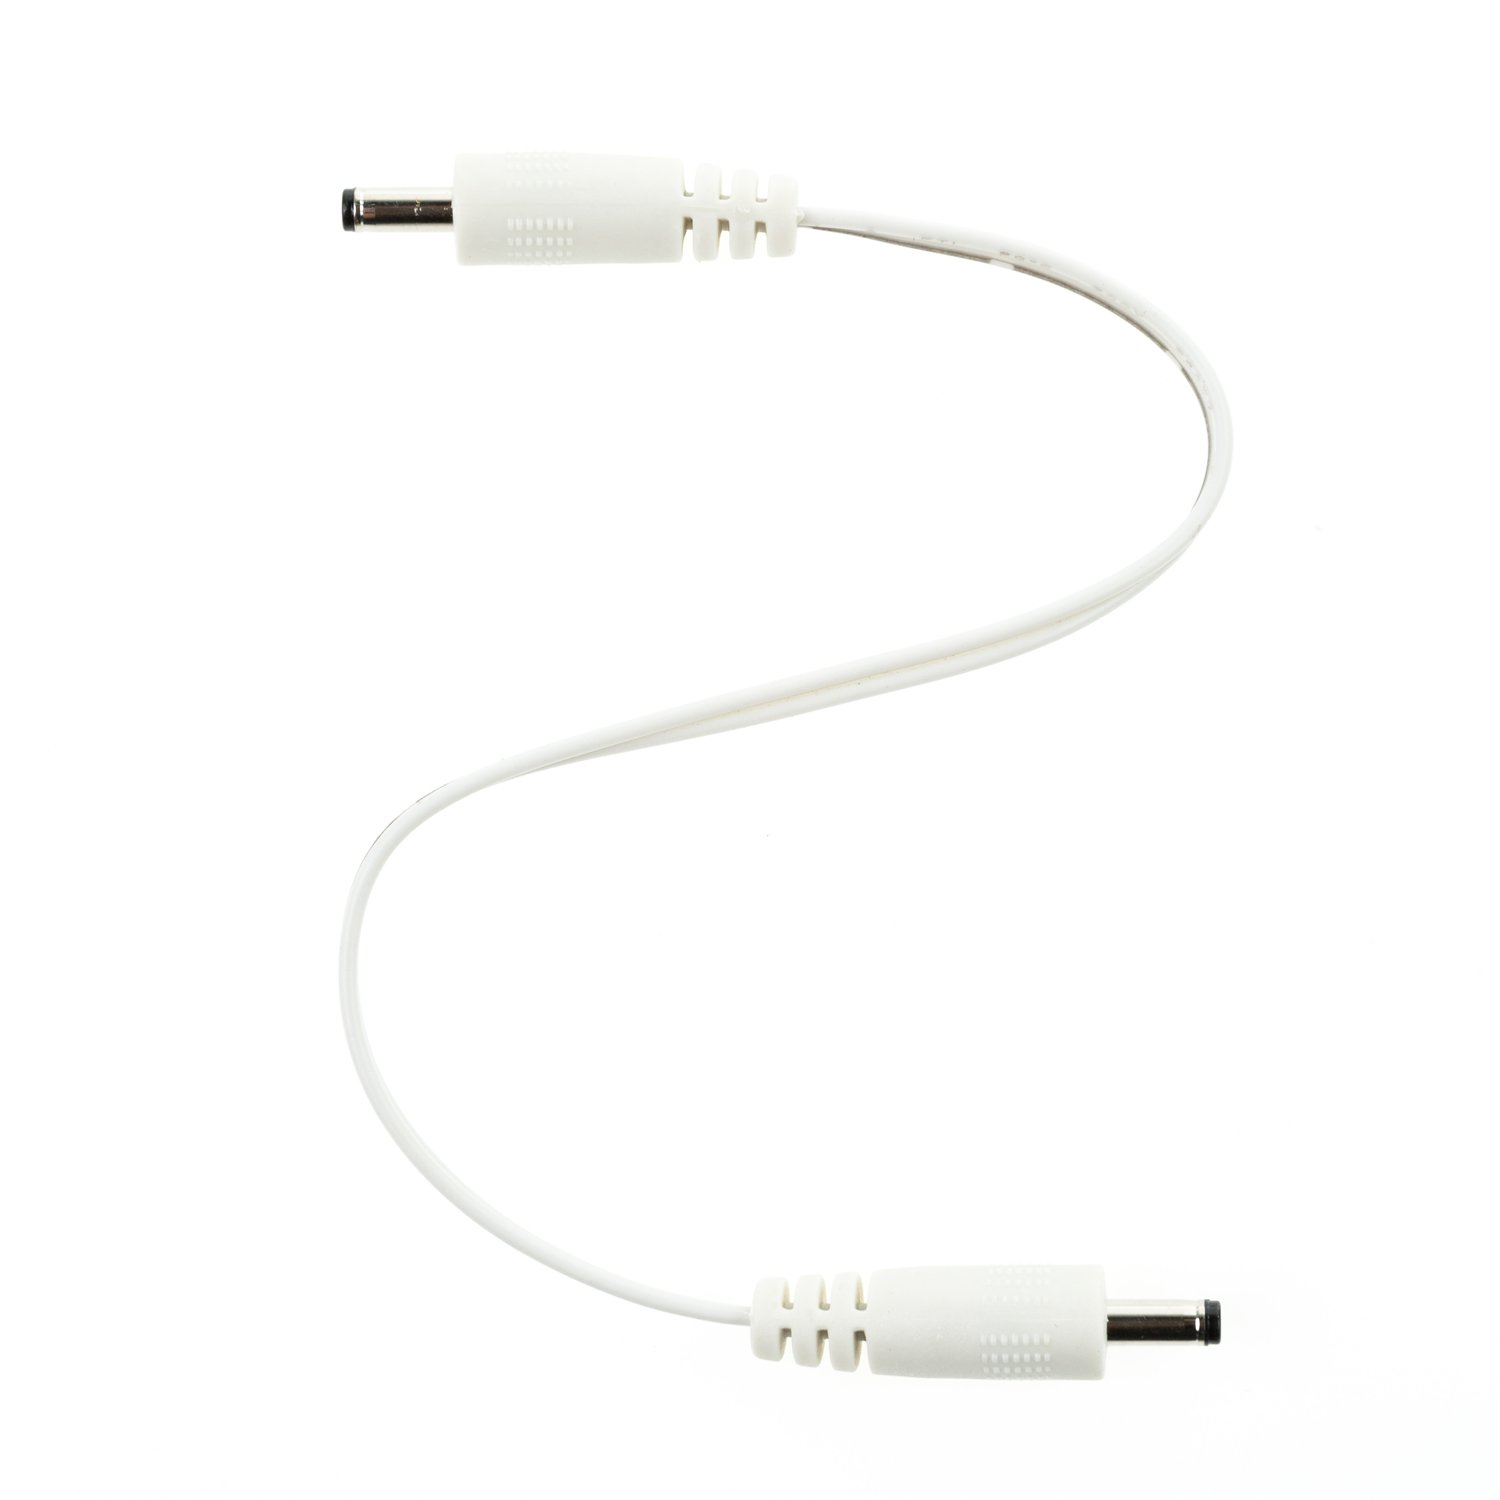 Male to Male EShine Interconnect Cable for LED Under Cabinet Lighting with Wire Clips for Comfortable Installation 6 inch, White